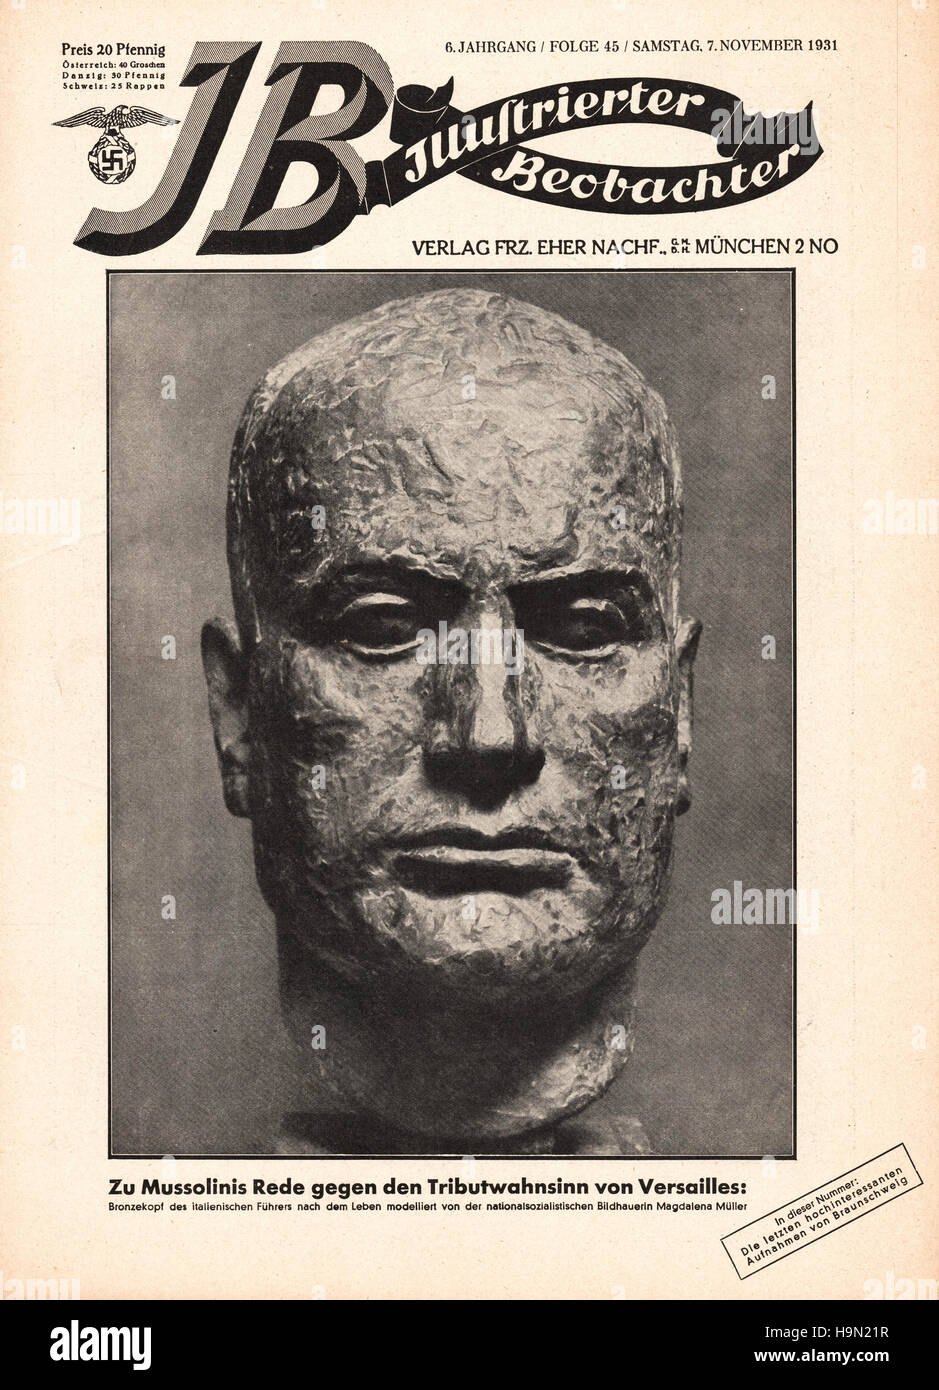 1931 Illustrierte Beobachter front page Bust of Benito Mussolini - Stock Image